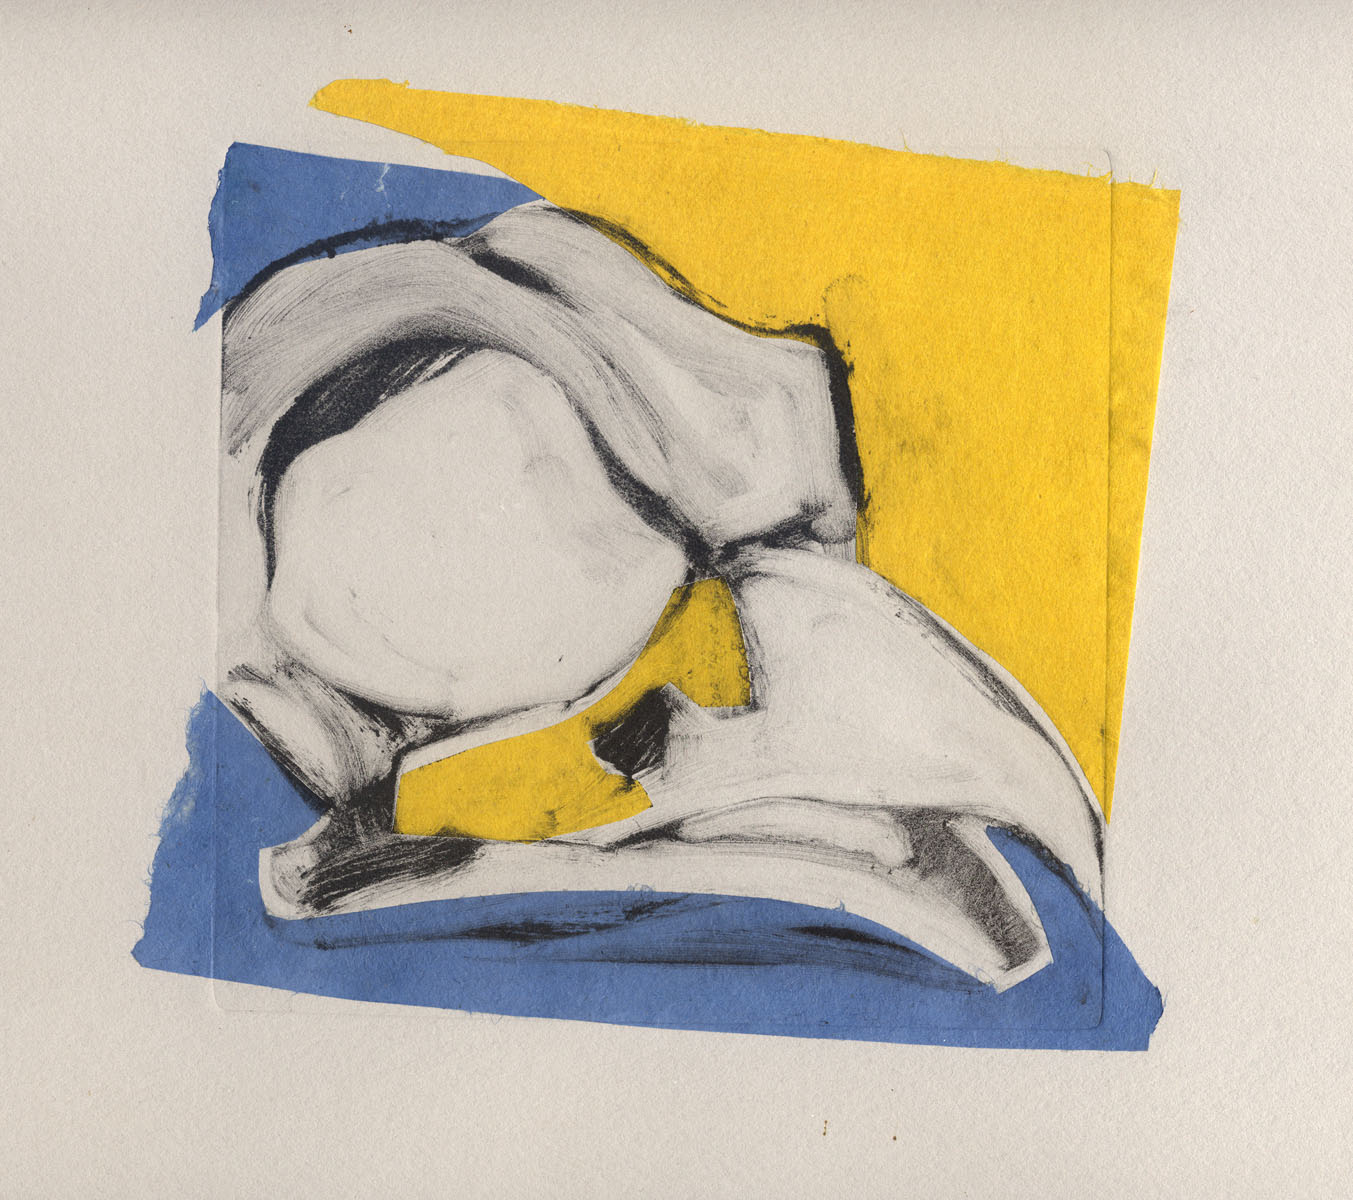 martha ebner bird skull yellow/blue